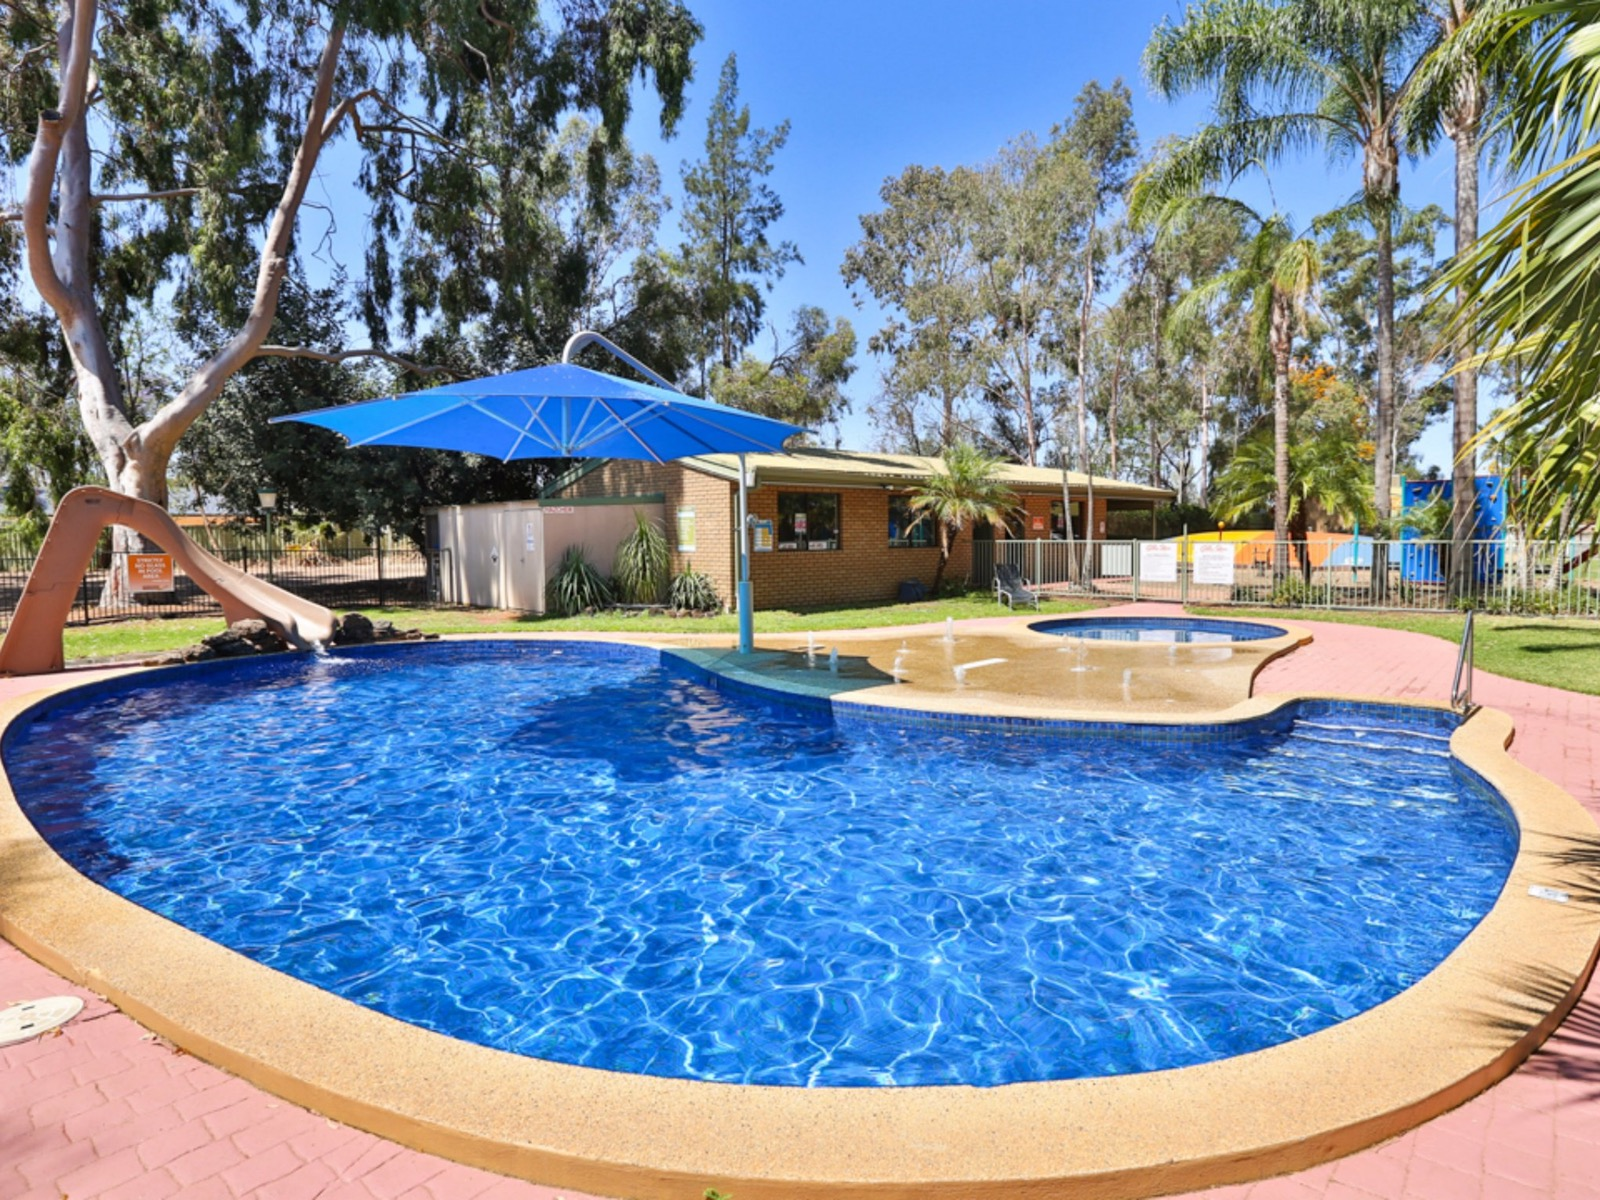 Lagoon Pool at BIG4 Golden River Holiday Park